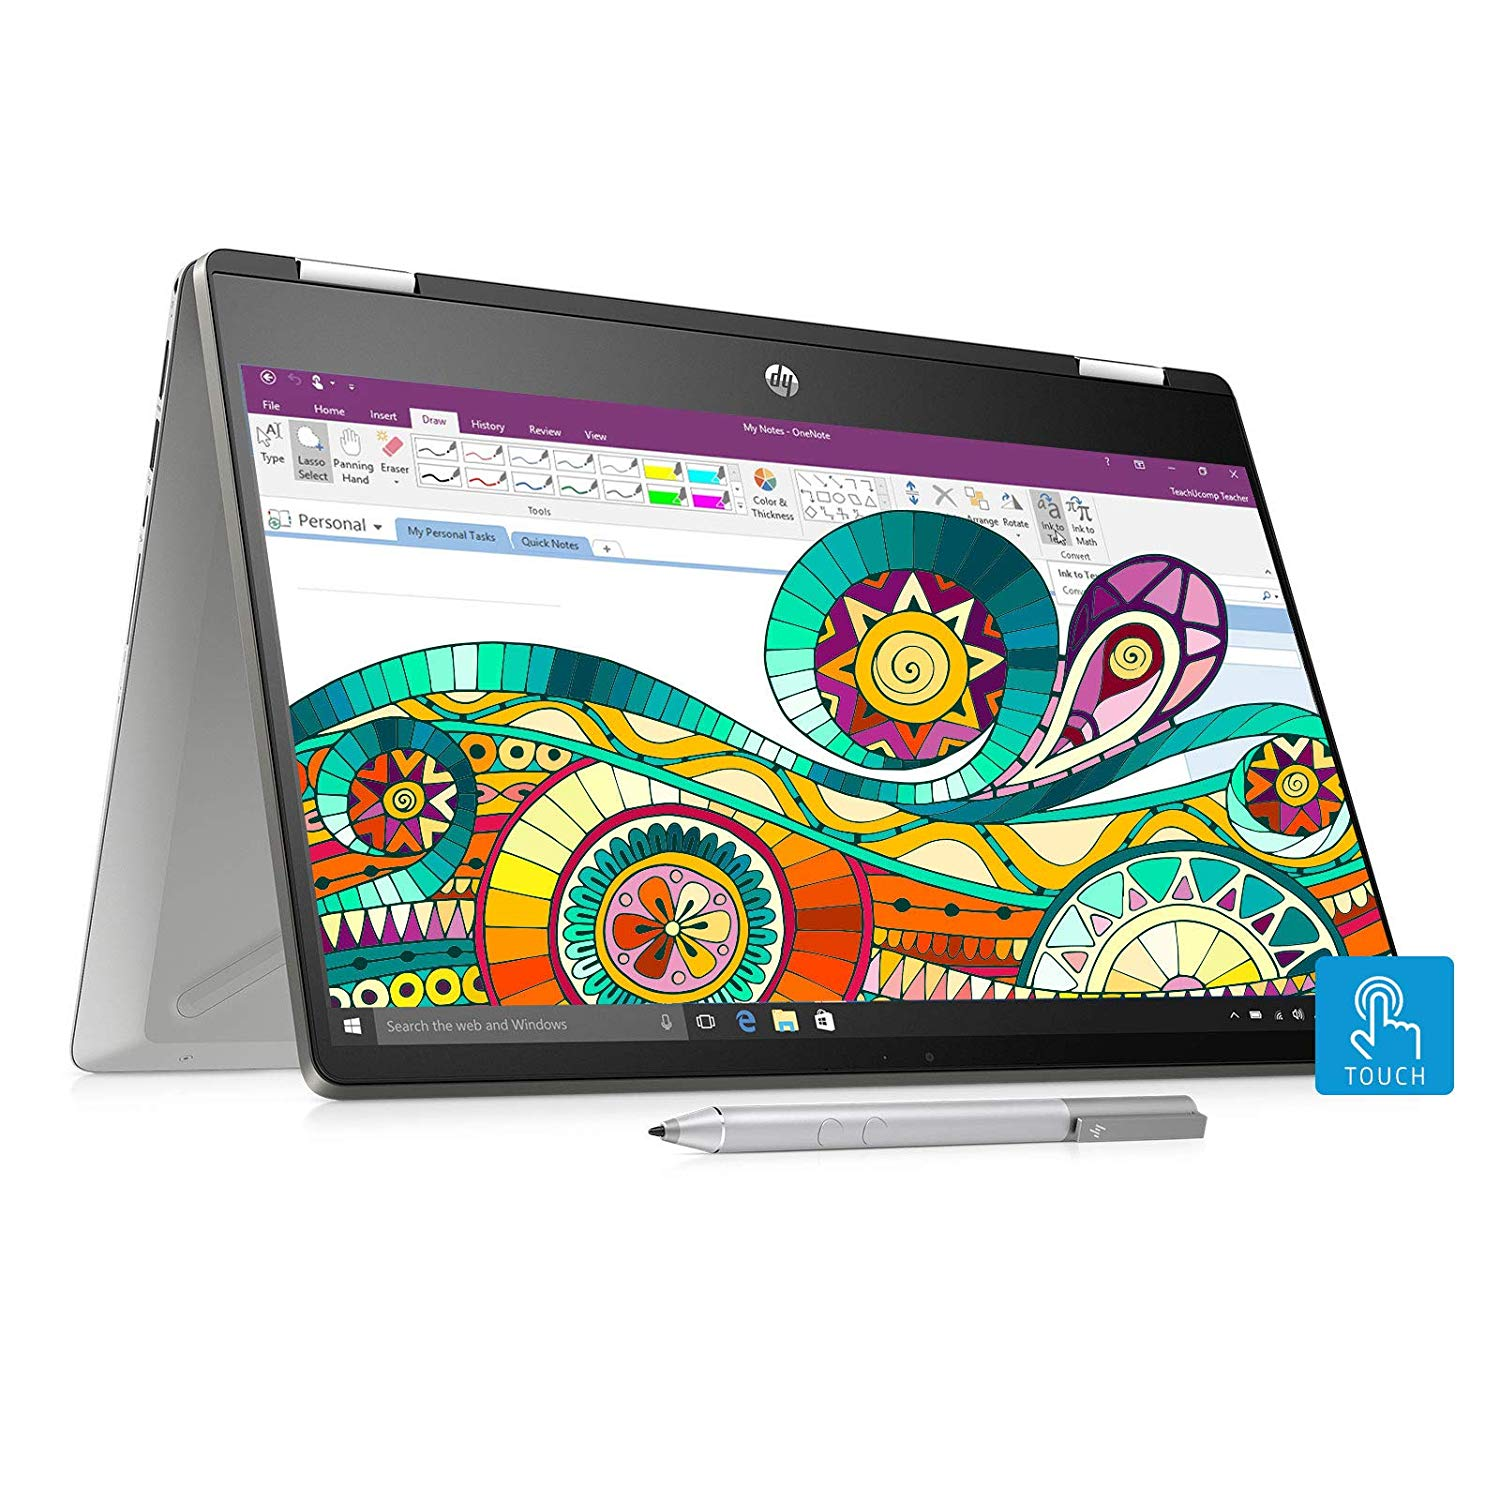 HP Pavilion x360 14-dh0101TU Laptop